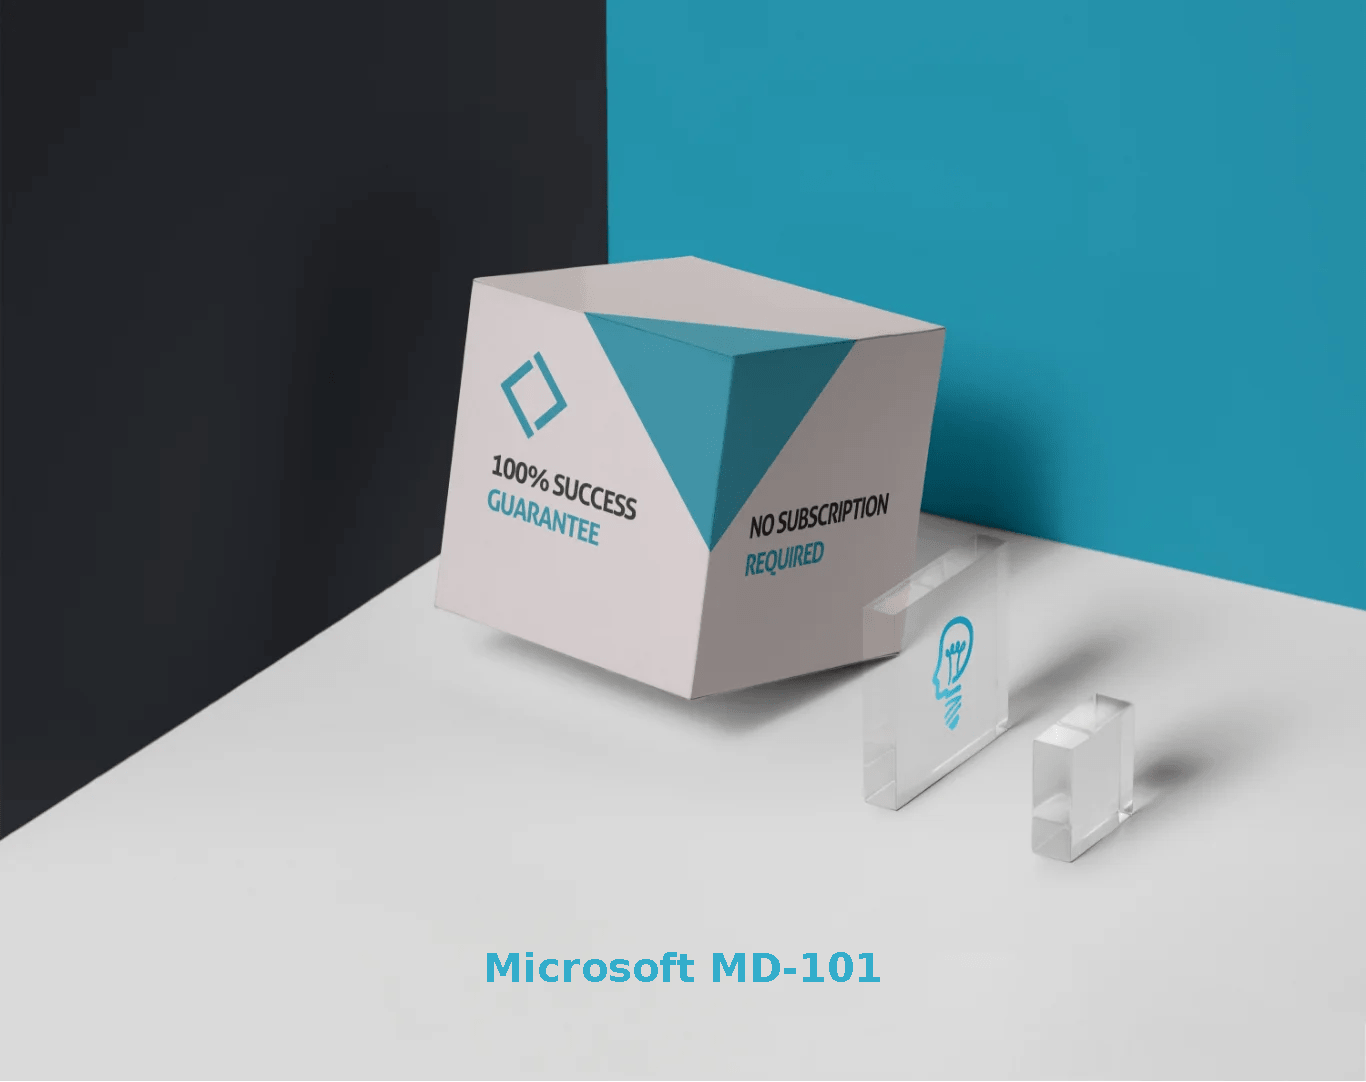 Microsoft MD-101 Exams